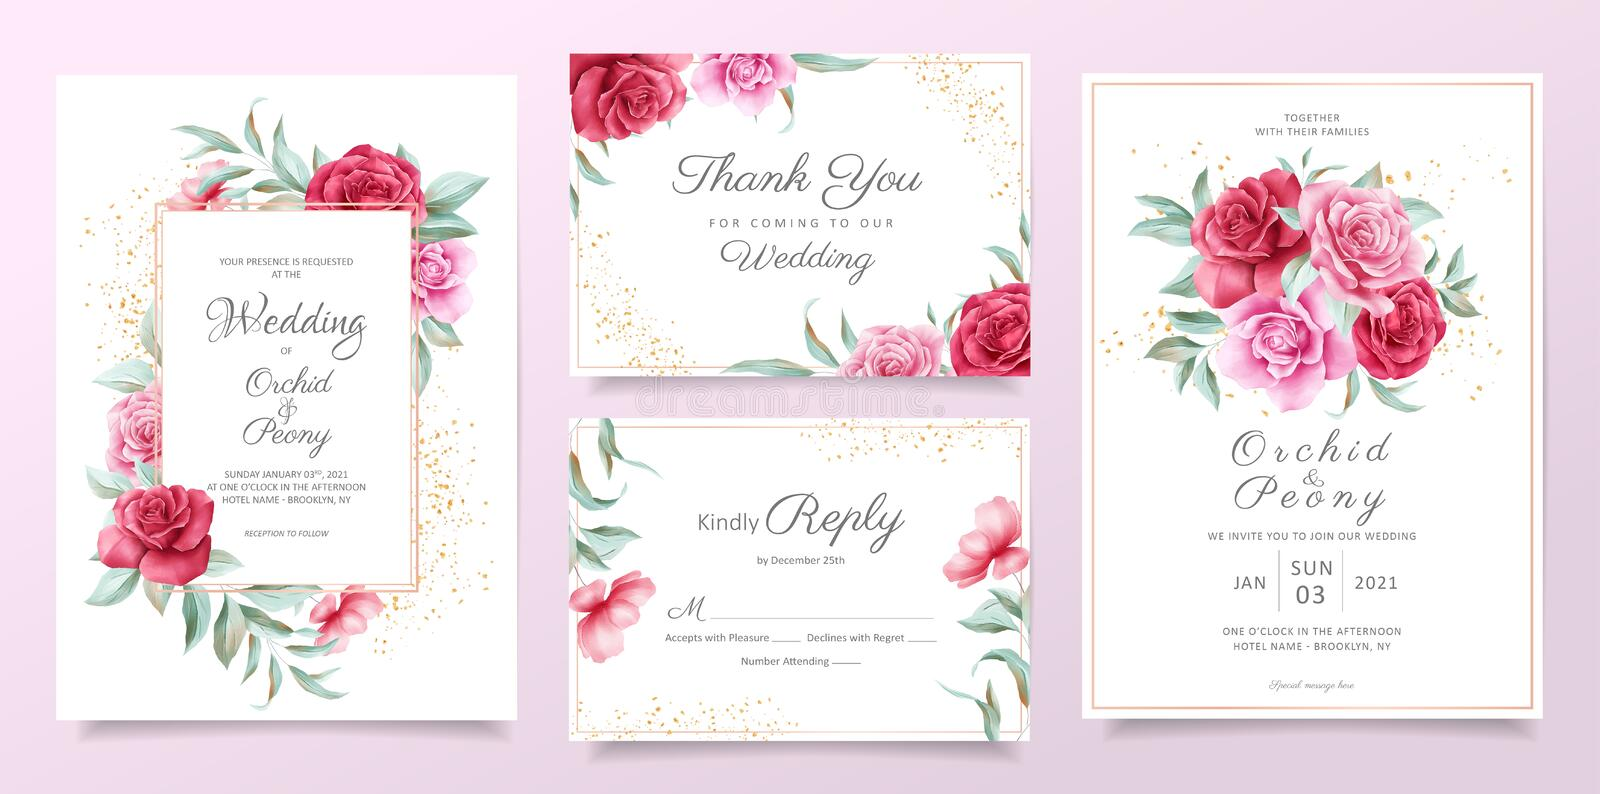 Floral wedding invitation card template set with red and purple roses, leaves, and golden decorative. Botanical card background royalty free illustration